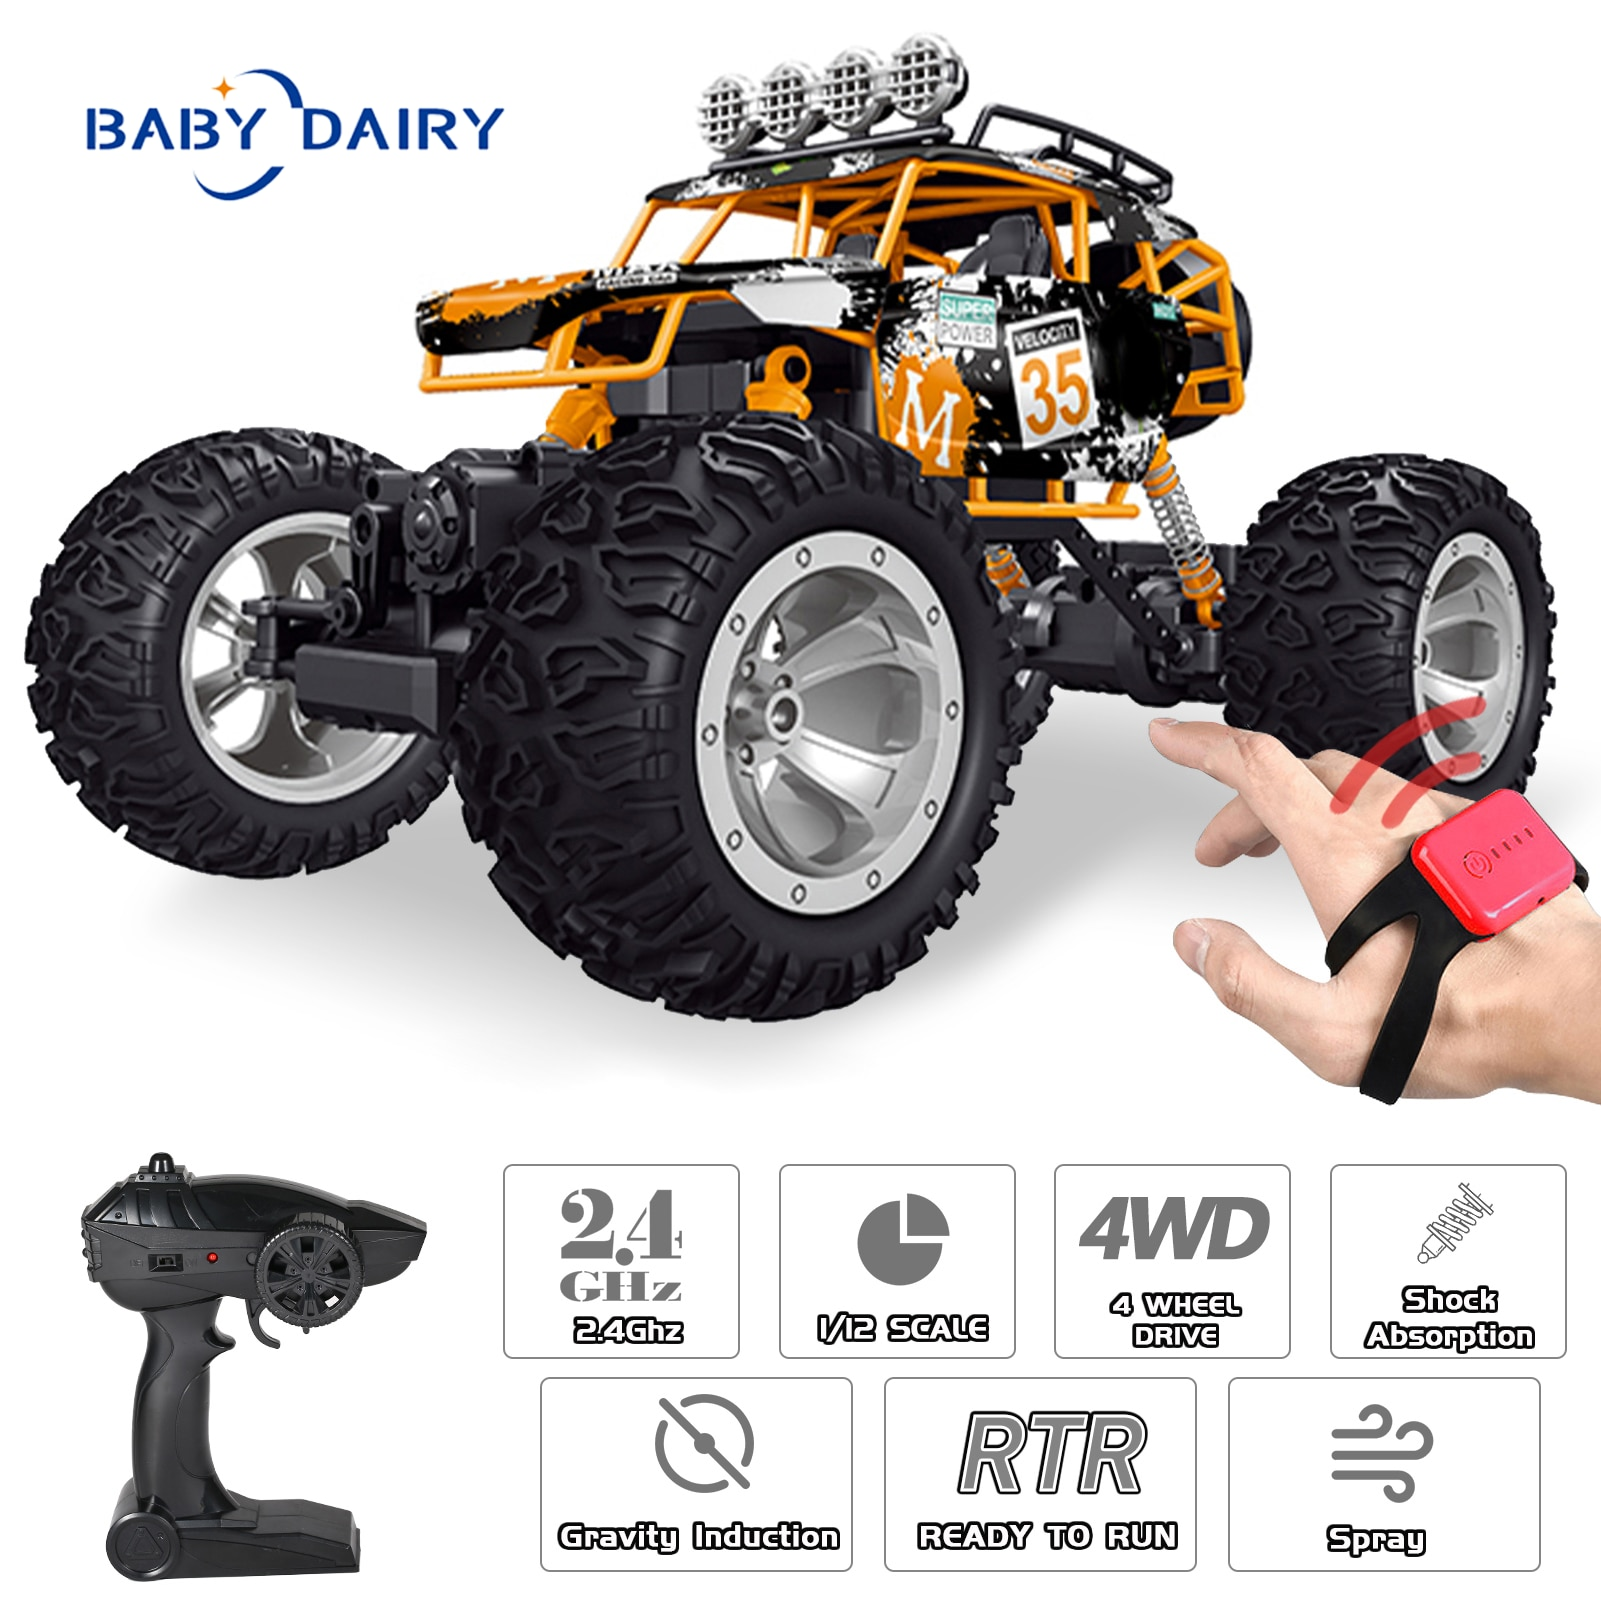 BABY DAIRY QX3688 RC Car 2.4Ghz 1/12 Spray Car Off Road RC Trucks 4WD Climbing Vehicle with Control